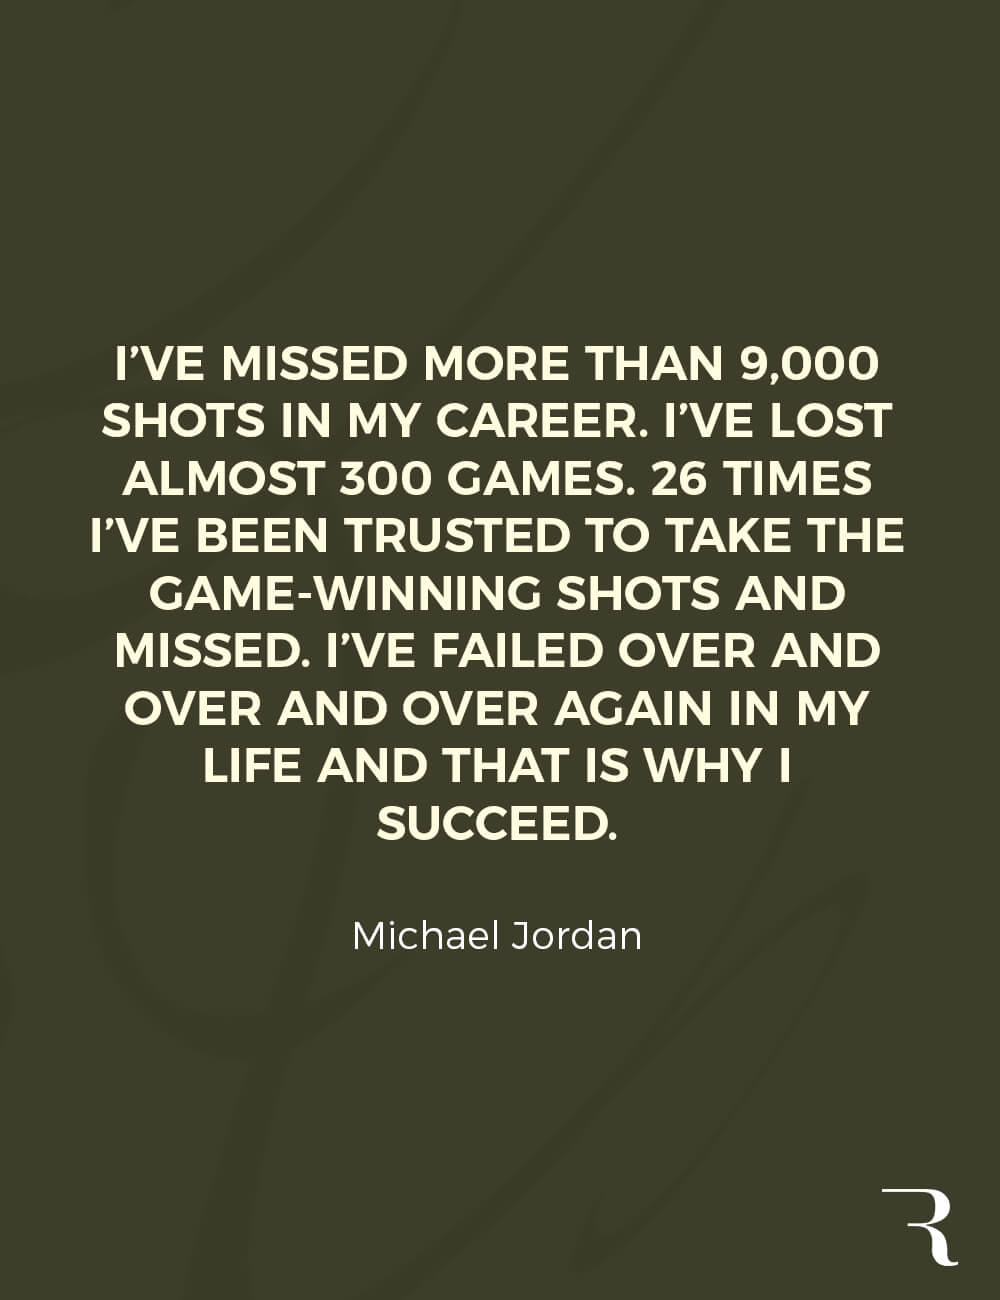 """Motivational Quotes: """"I've failed over and over and over again in my life and that is why I succeed."""" 112 Motivational Quotes to Be a Better Entrepreneur"""